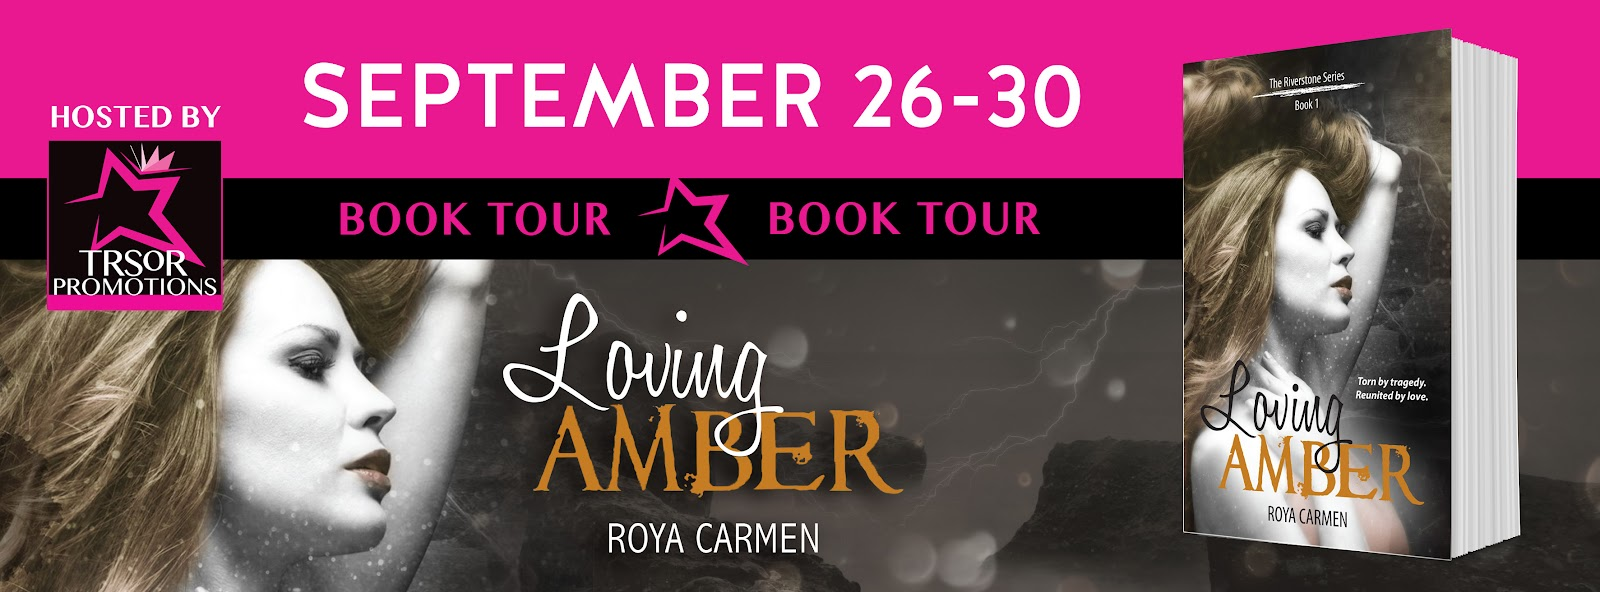 LOVING_AMBER_BOOK_TOUR.jpg